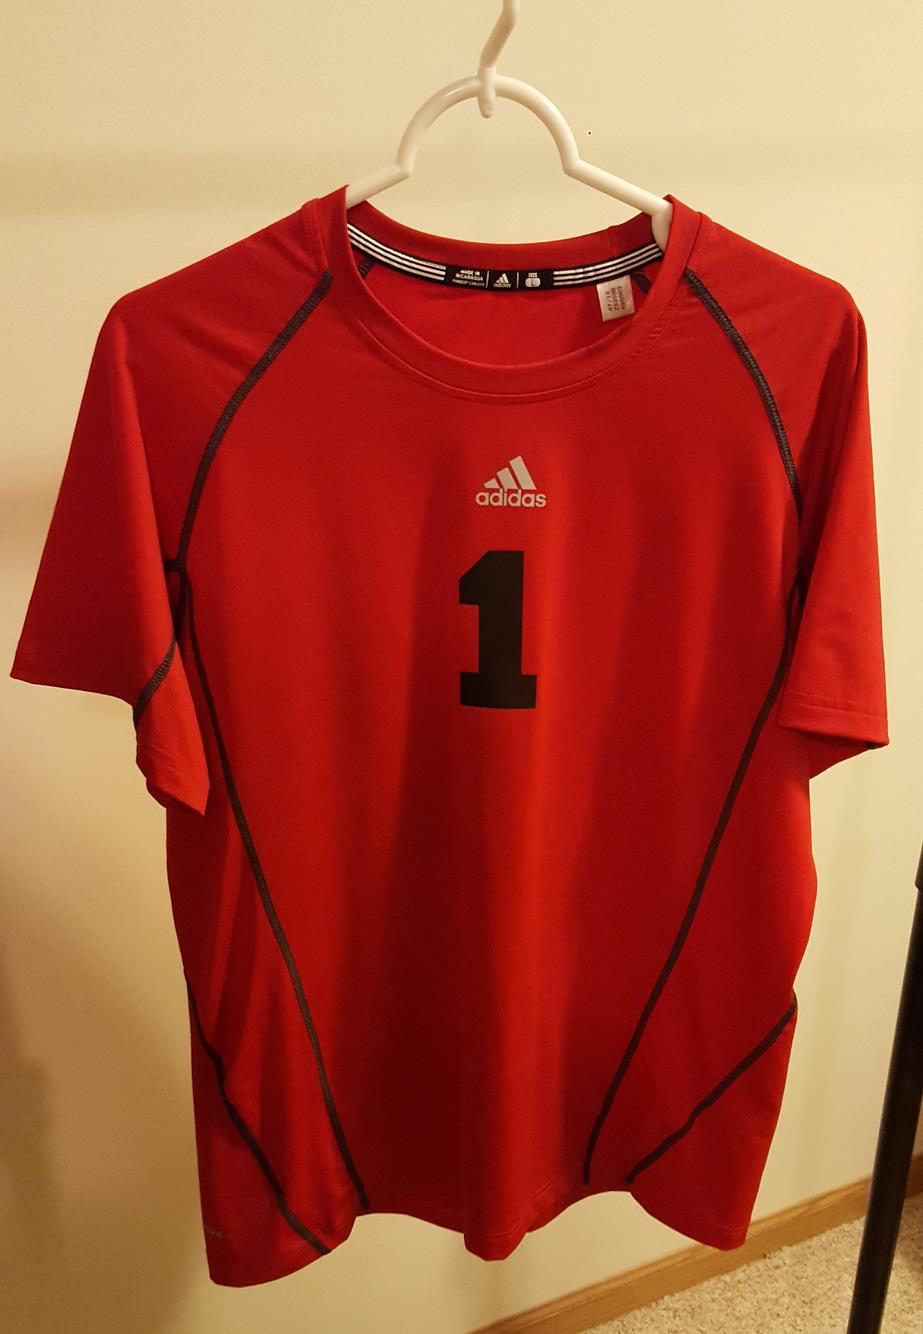 Adidas Climacool Short Sleeve Goalkeeper Jersey - Red - Used ...